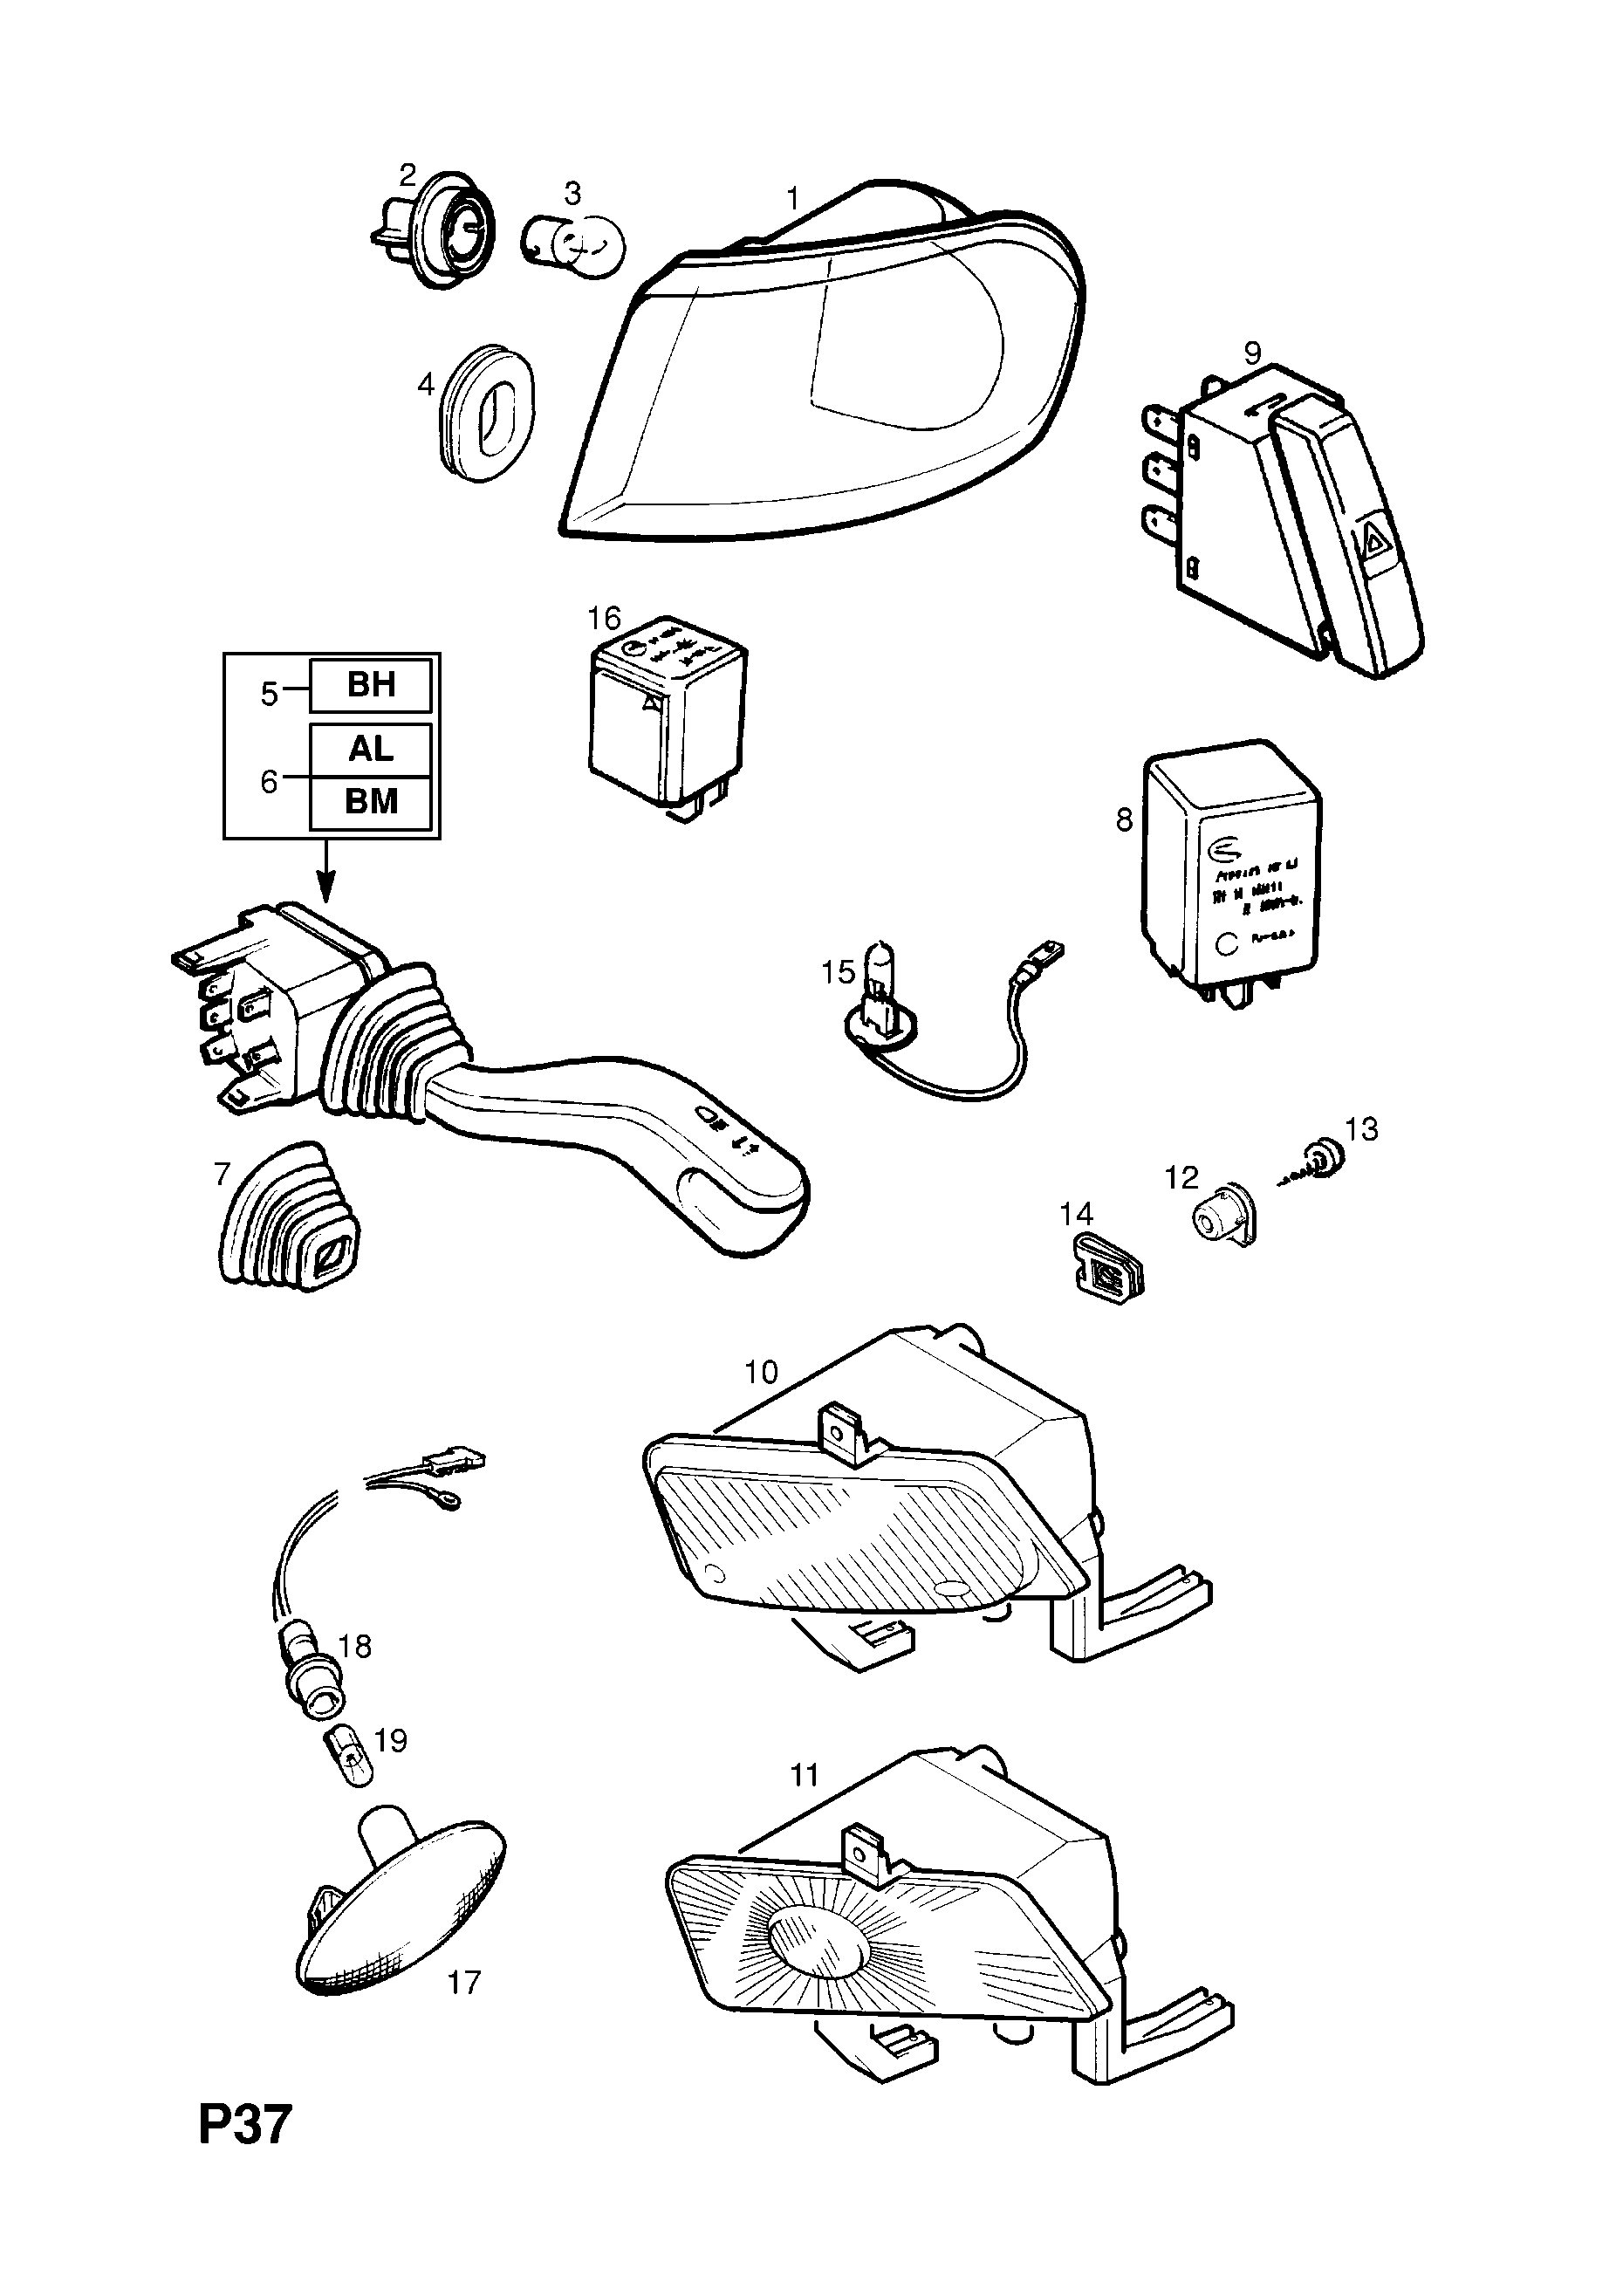 Front Turn Signal Lamp And Fixings For Vehicles With